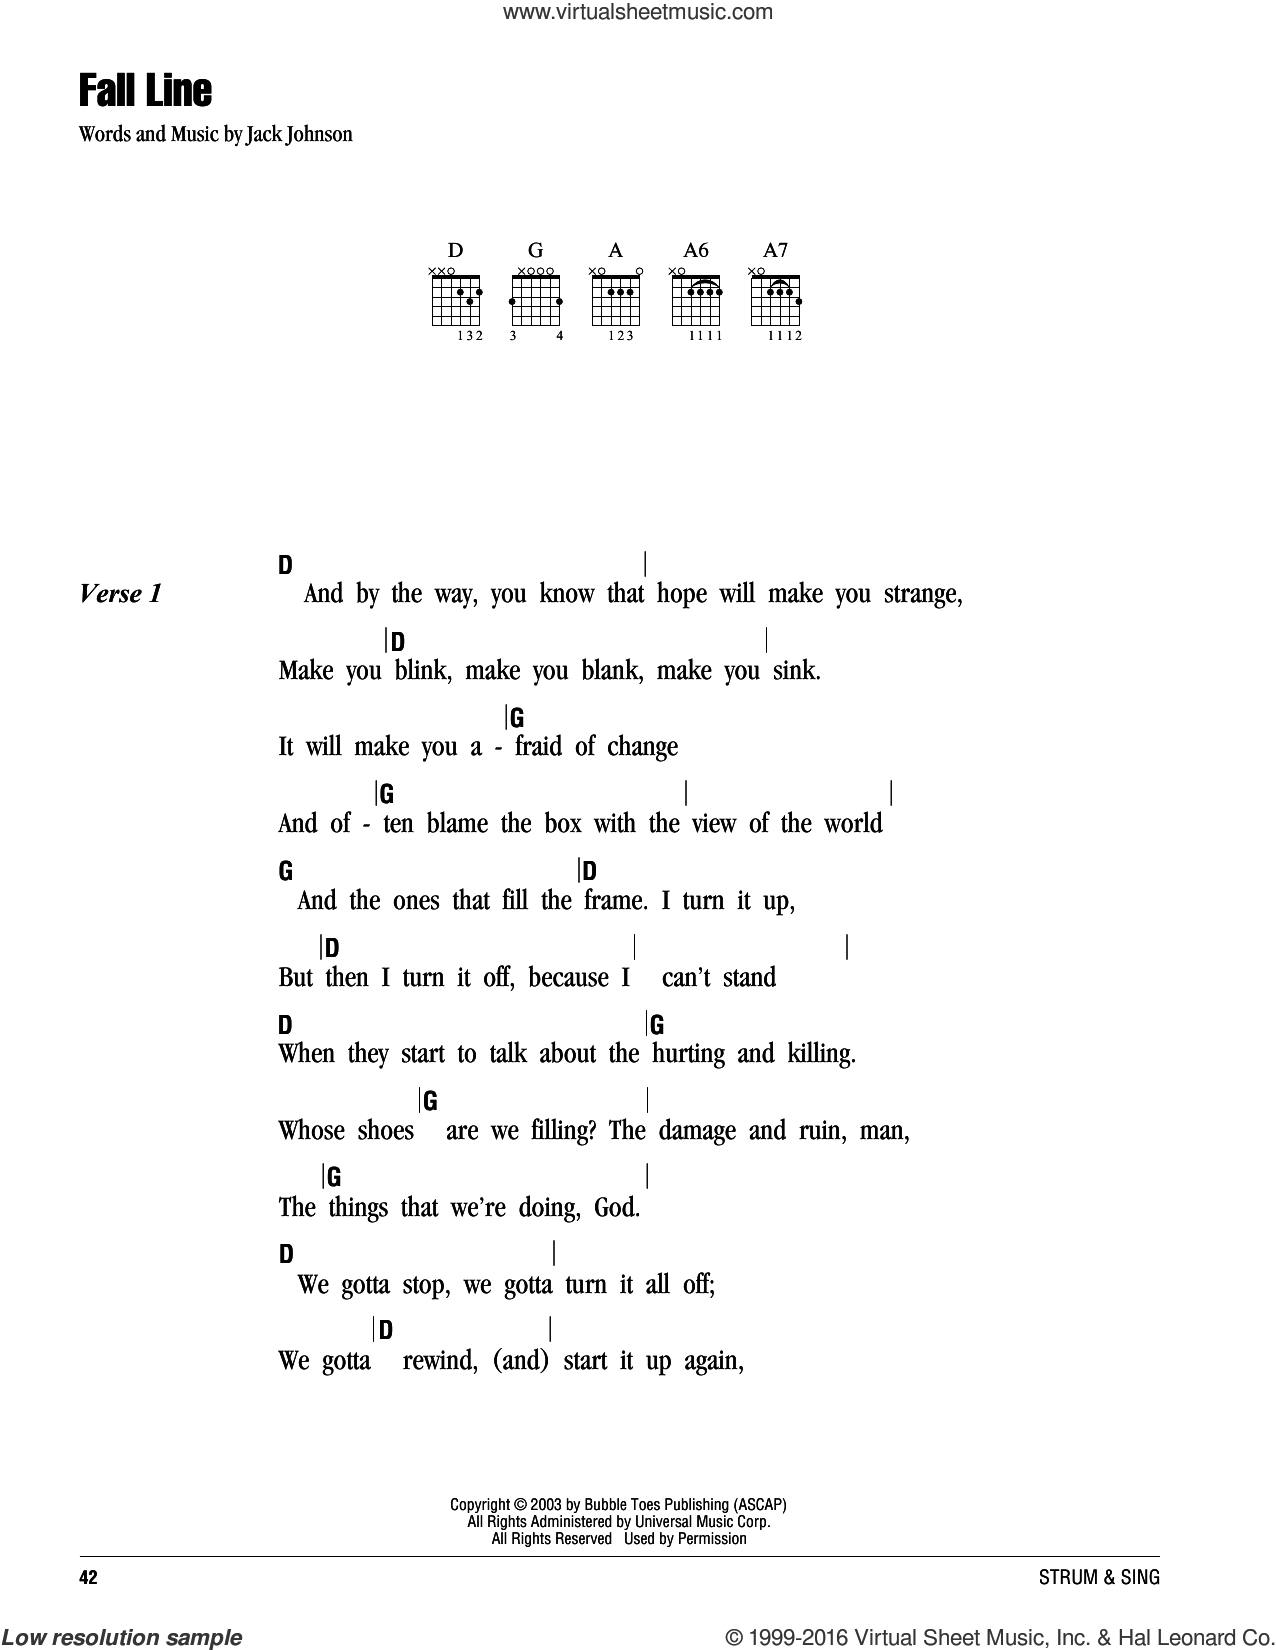 Fall Line sheet music for guitar (chords) by Jack Johnson